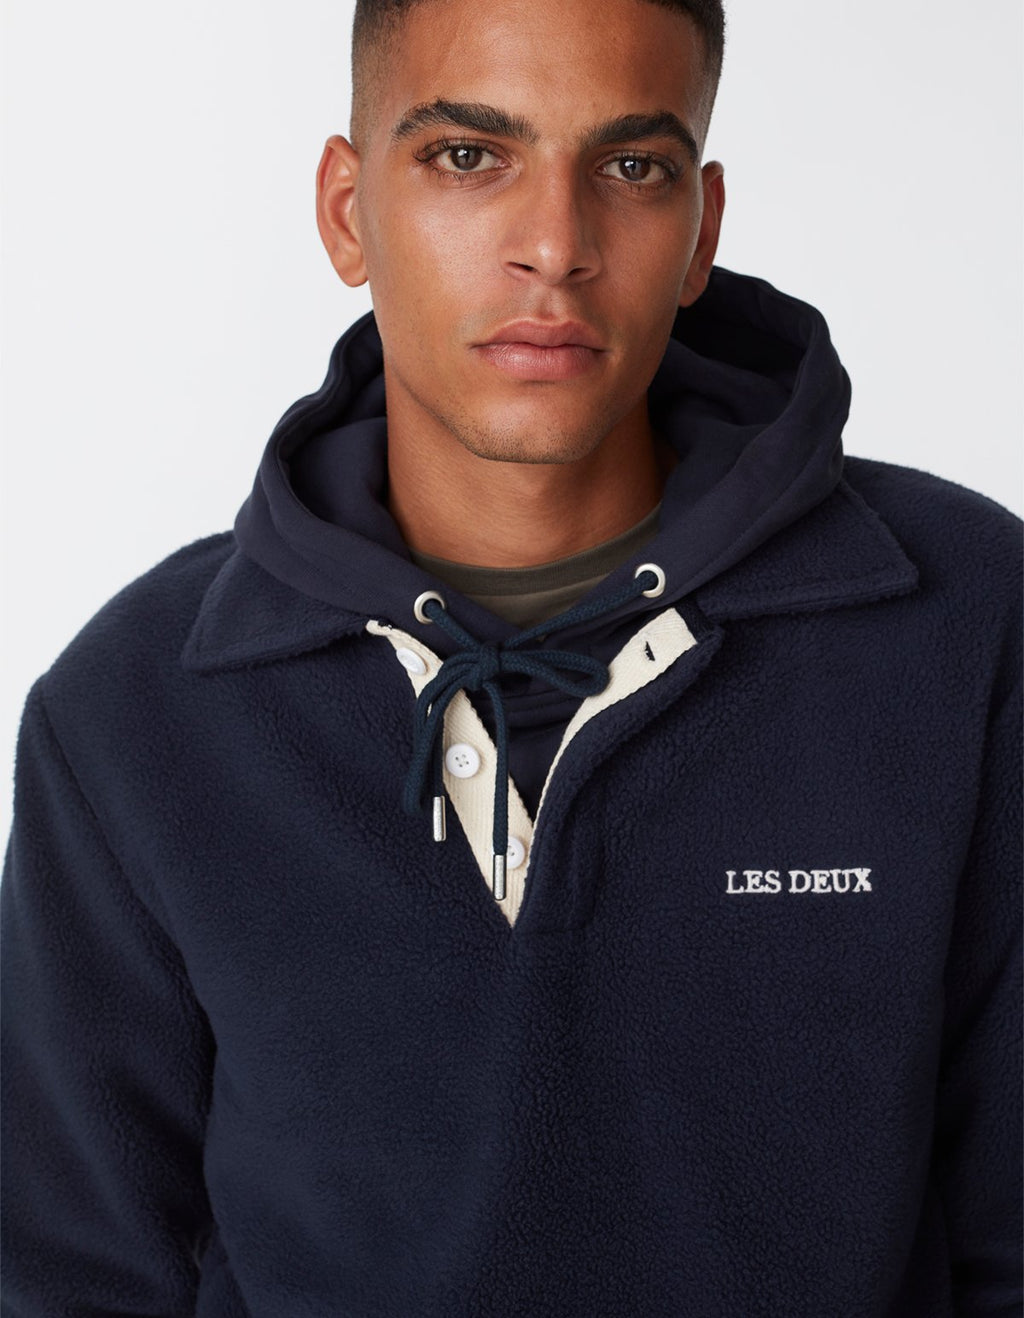 Les deux dallas fleece rugby sweatshirt dark navy